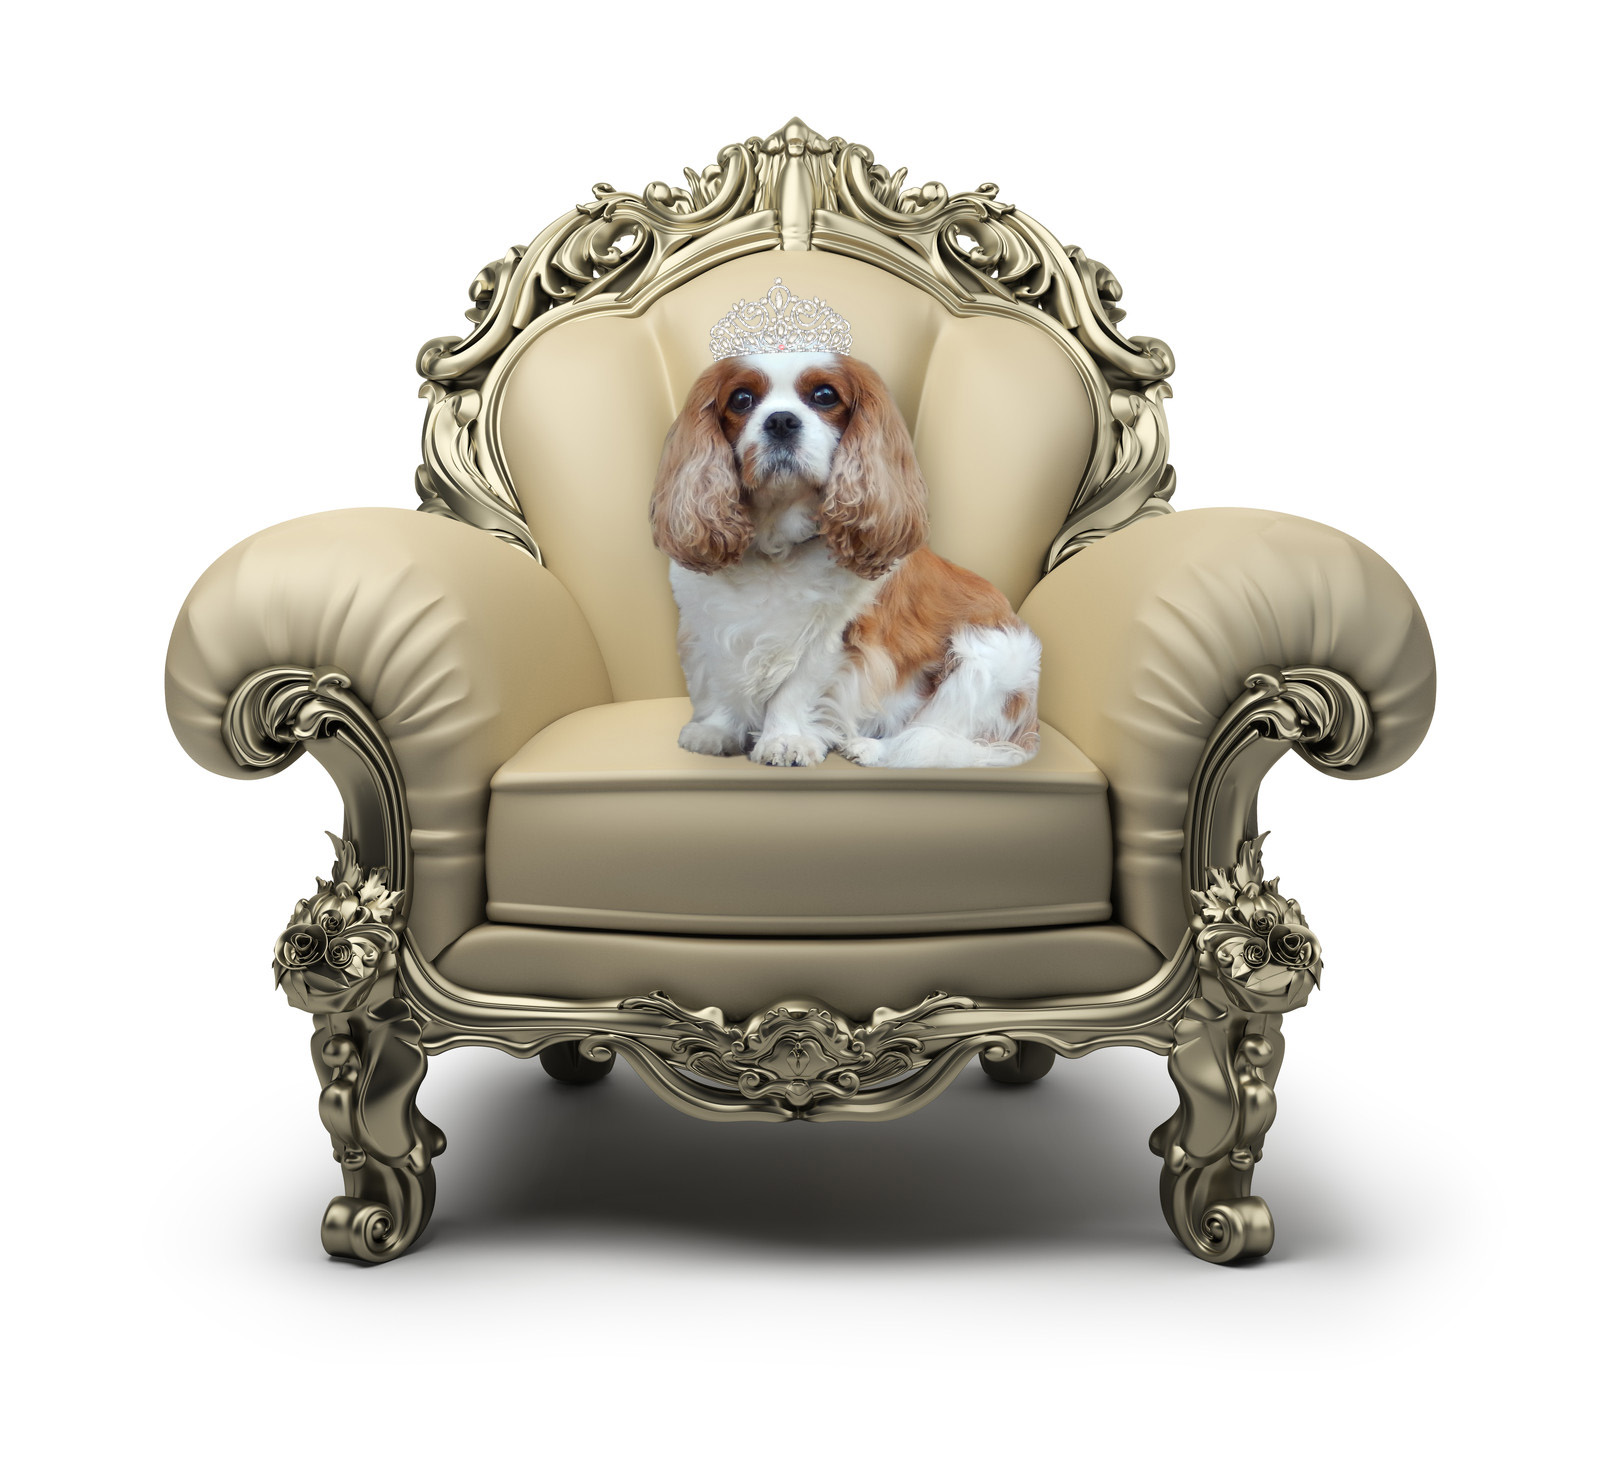 Mary on throne